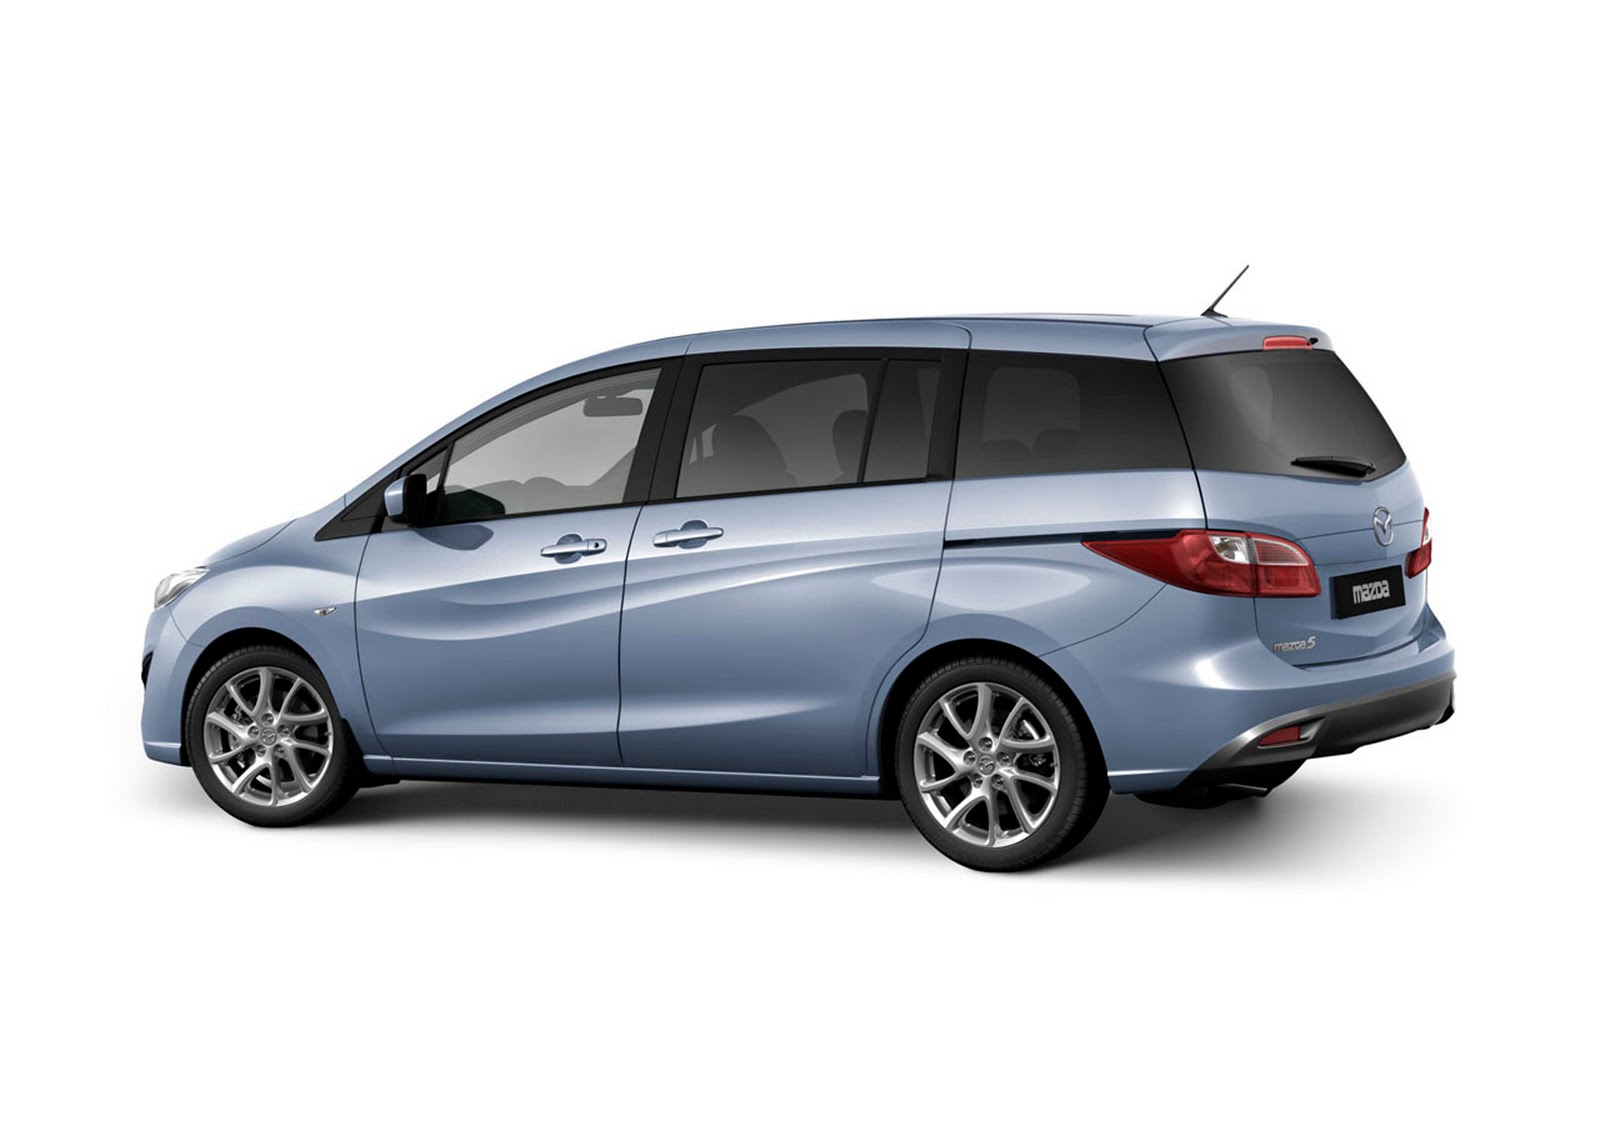 Mazda 5 2012 Wallpapers-stills-images And Pictures